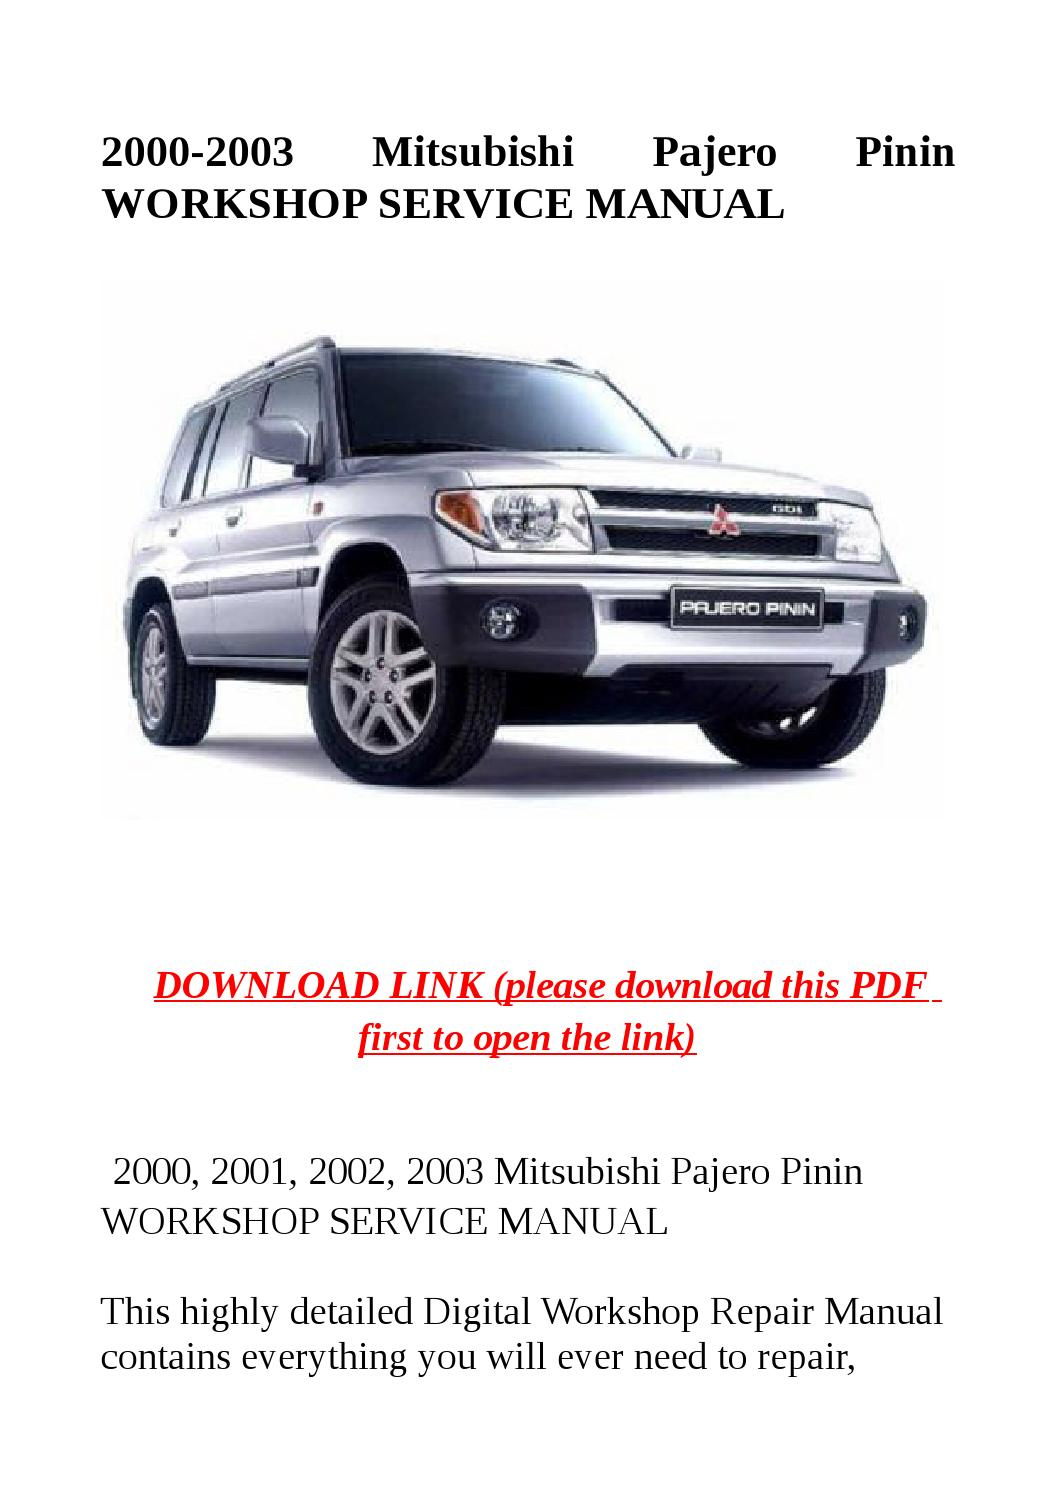 2000 2003 mitsubishi pajero pinin workshop service manual by Jacky Dean -  issuu